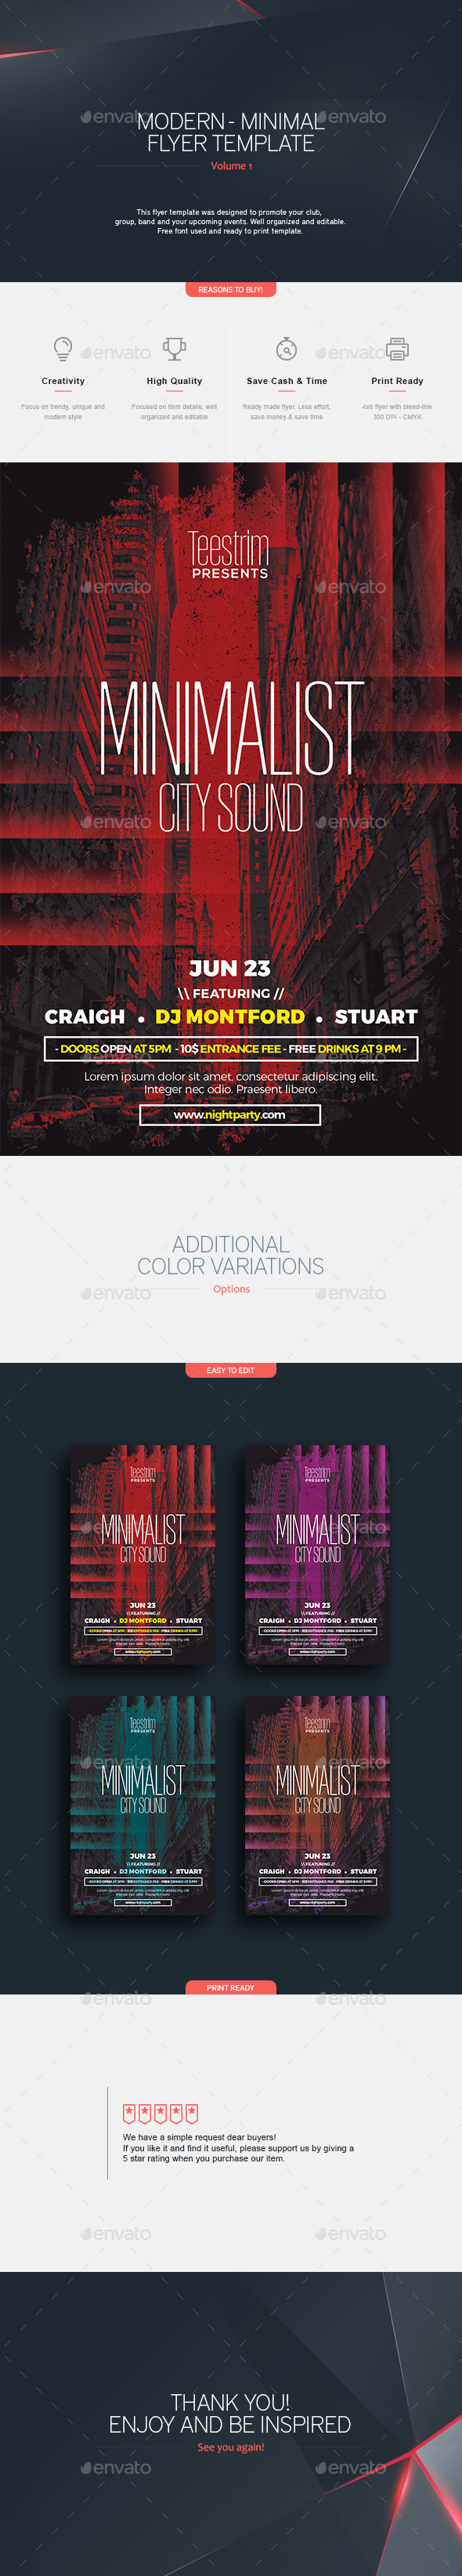 Minimal City Sound - Flyer Template - Clubs & Parties Events